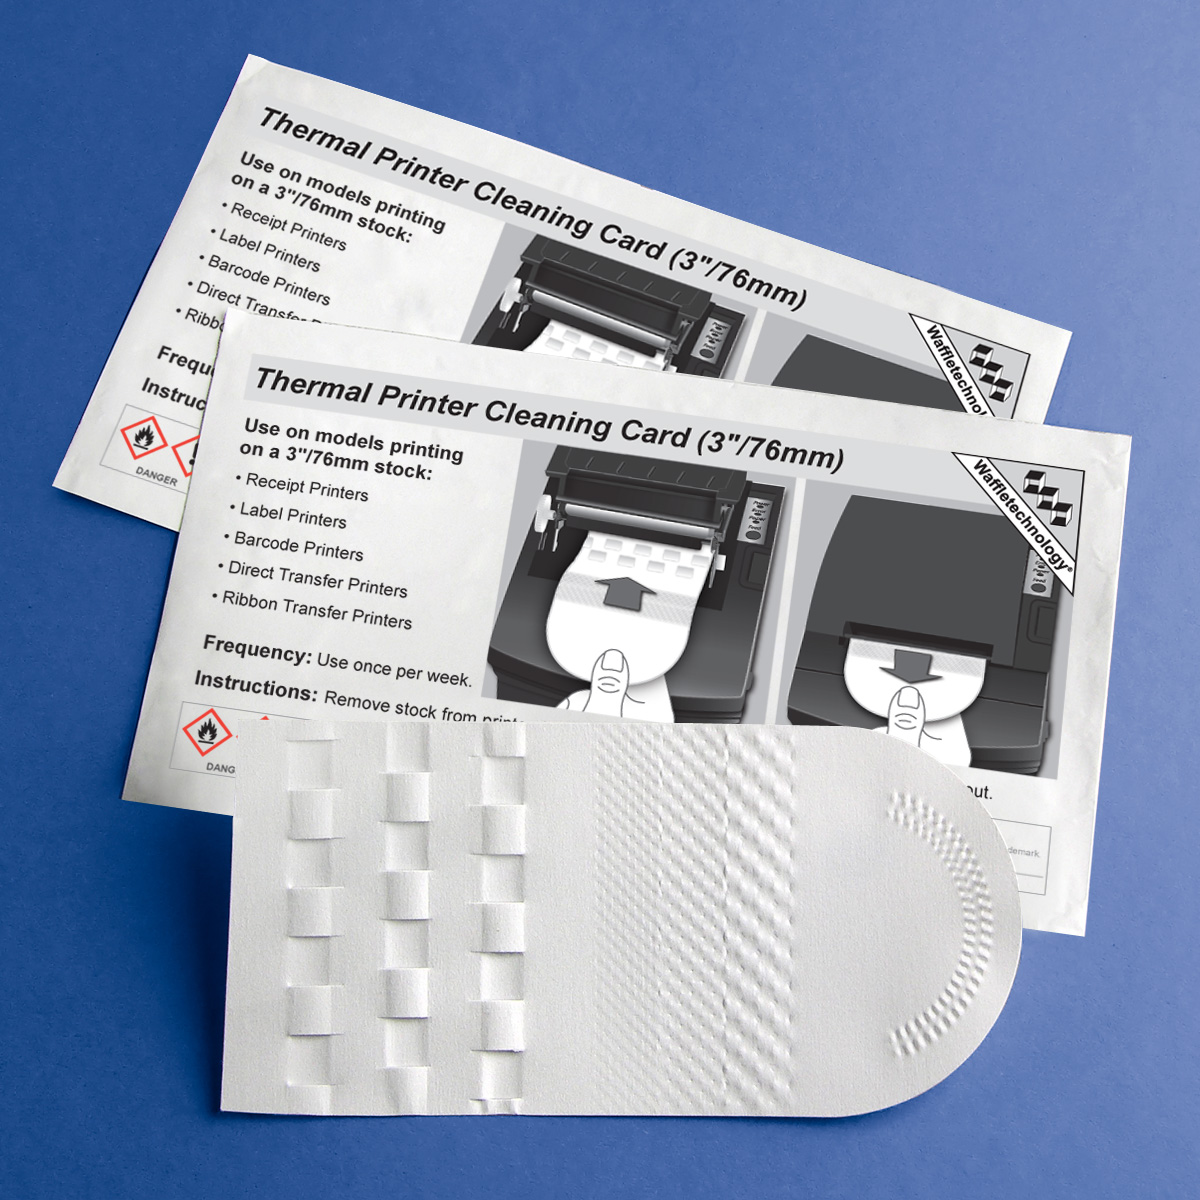 Thermal Printer Cleaning Card mit Waffletechnology ® (3 / 76mm)